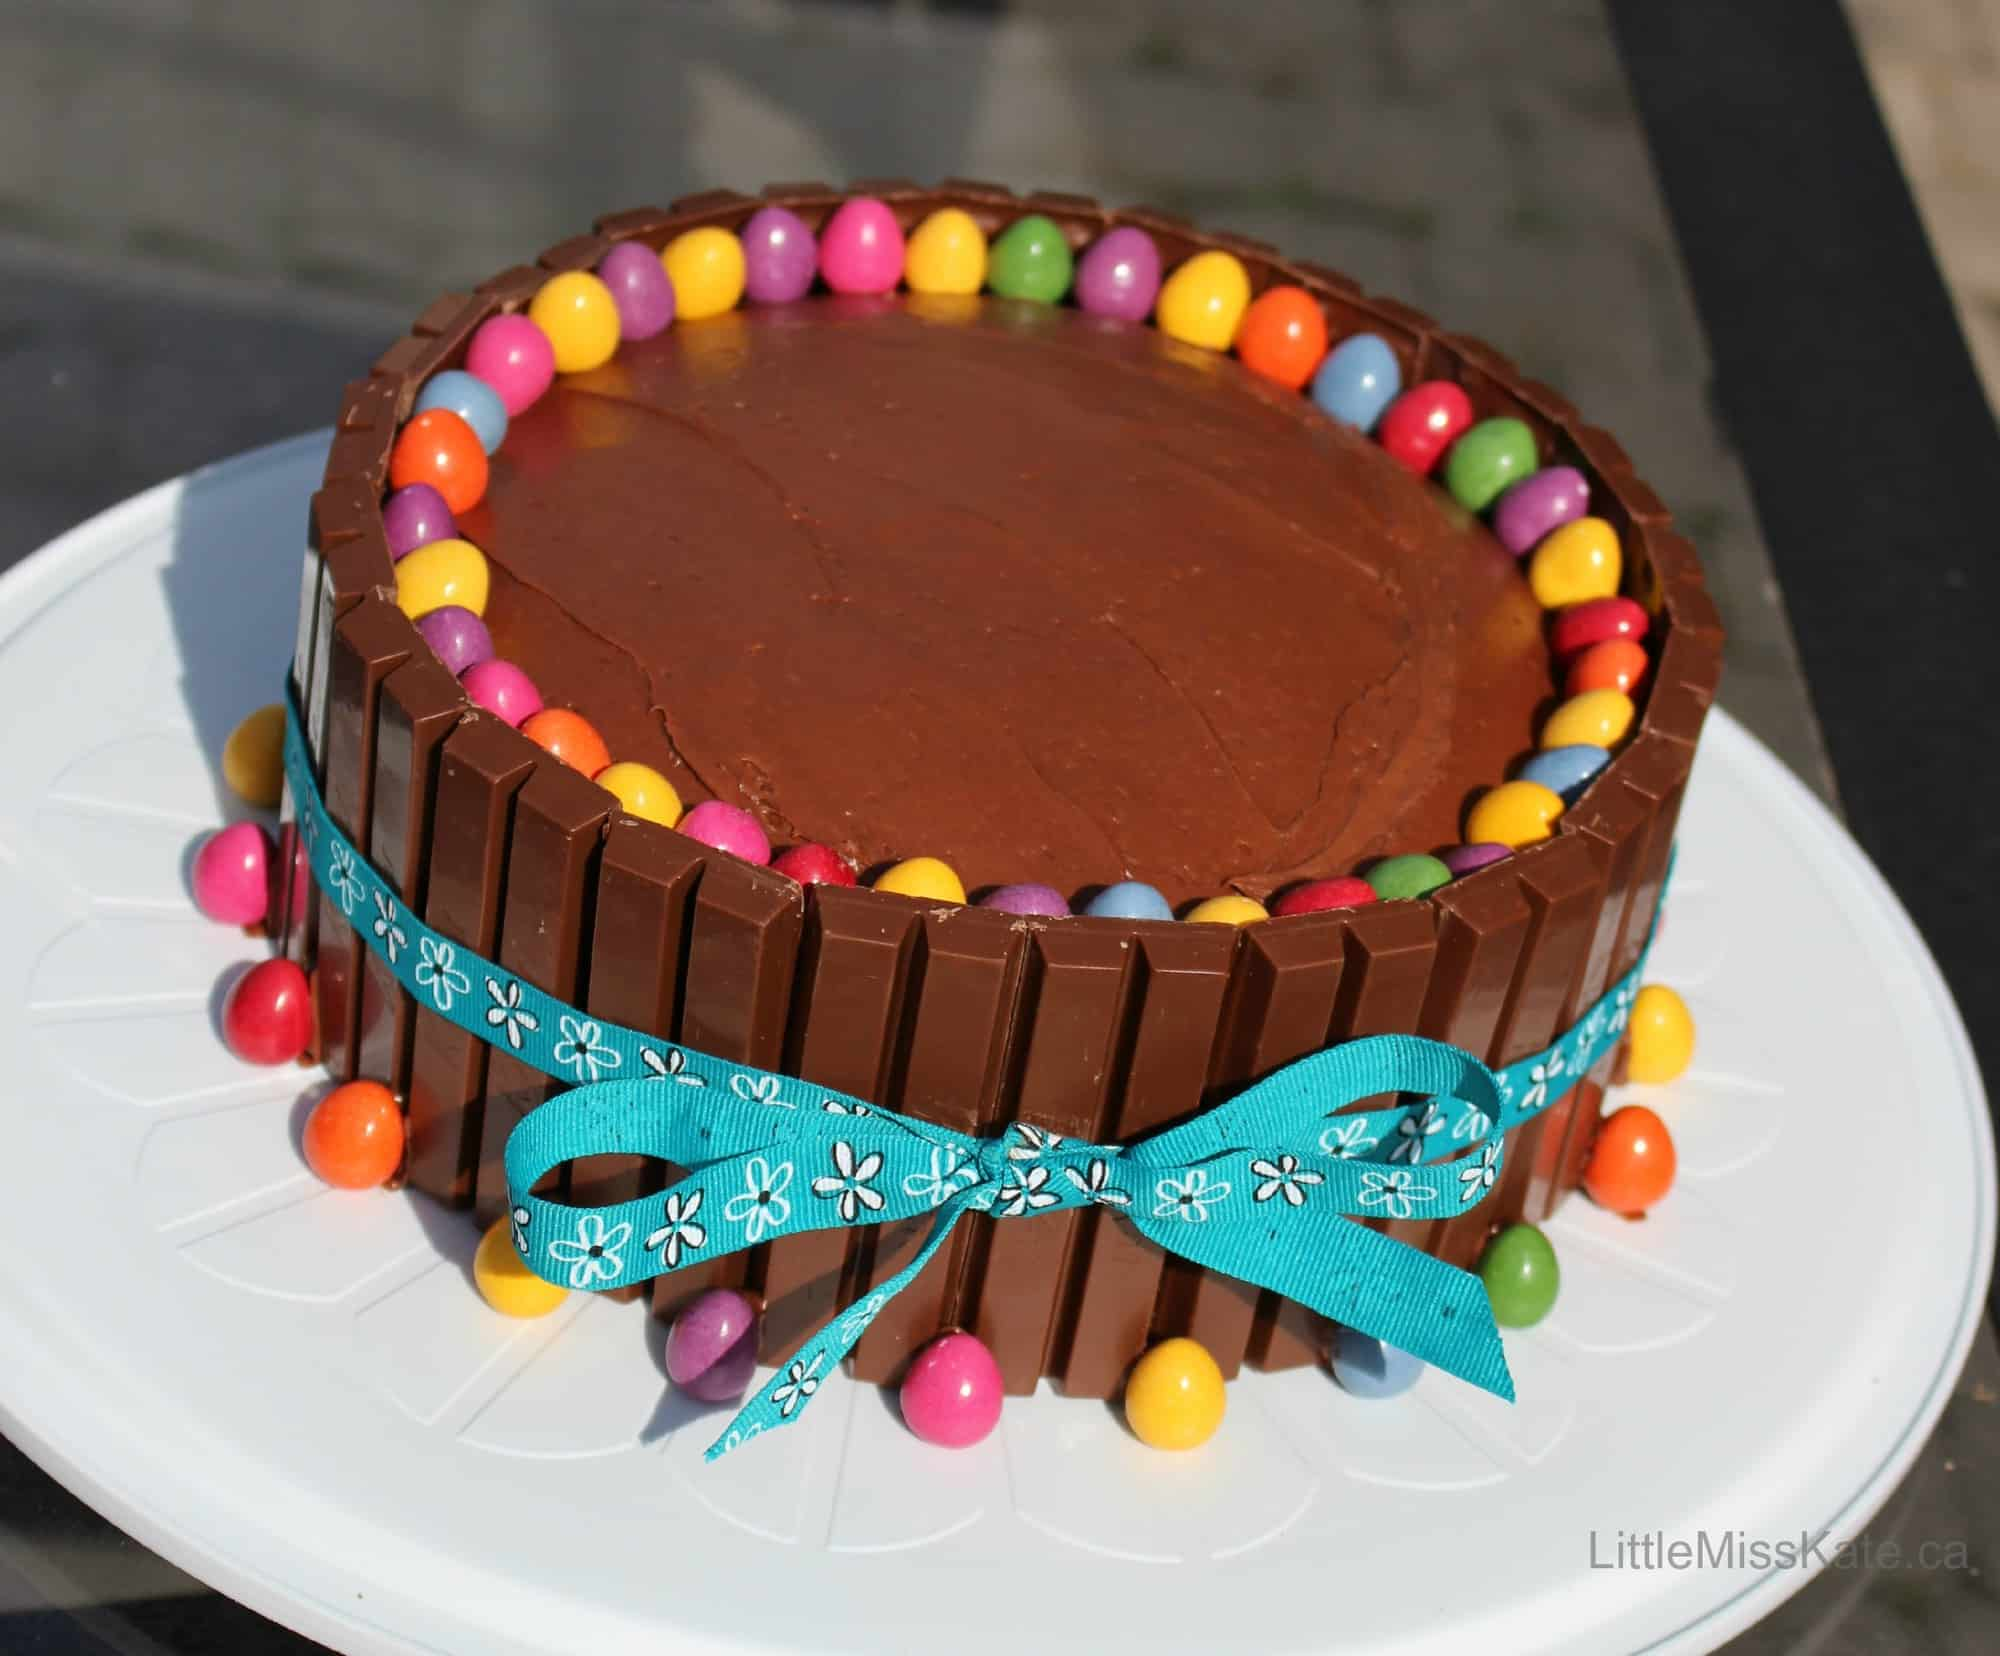 Cake Decoration At Home Ideas